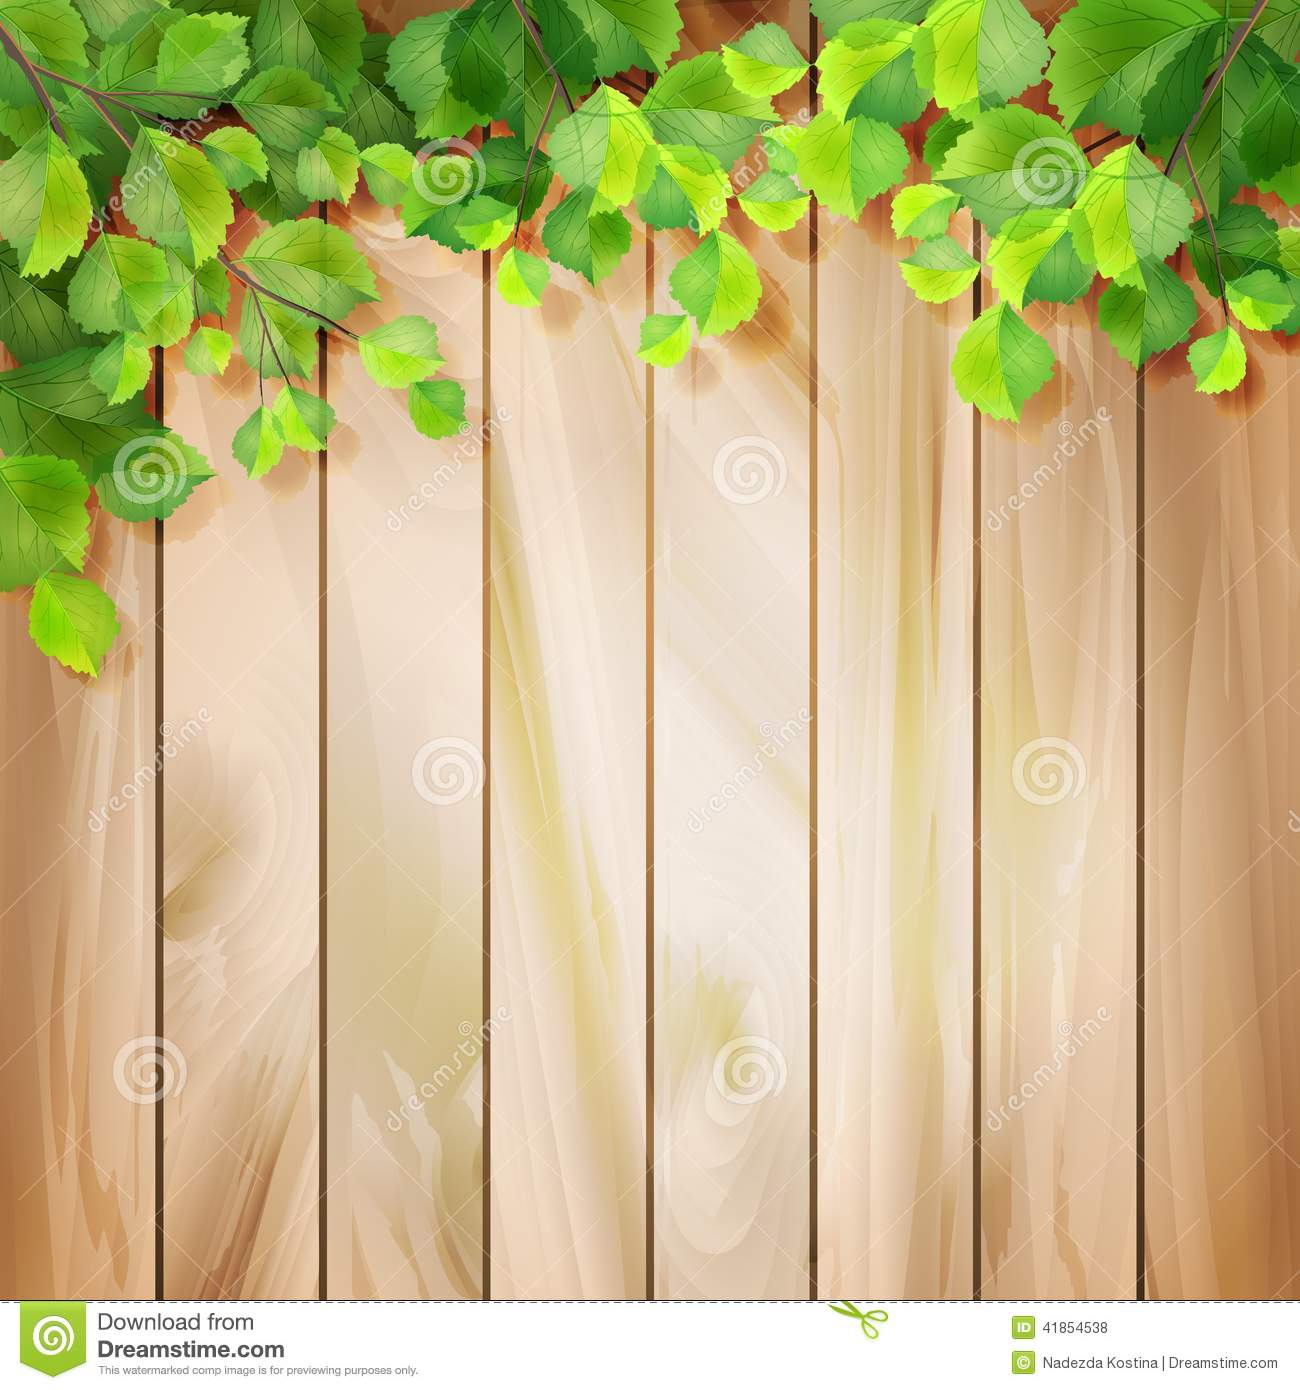 Green Leaves On A Wood Texture Vector Background Stock